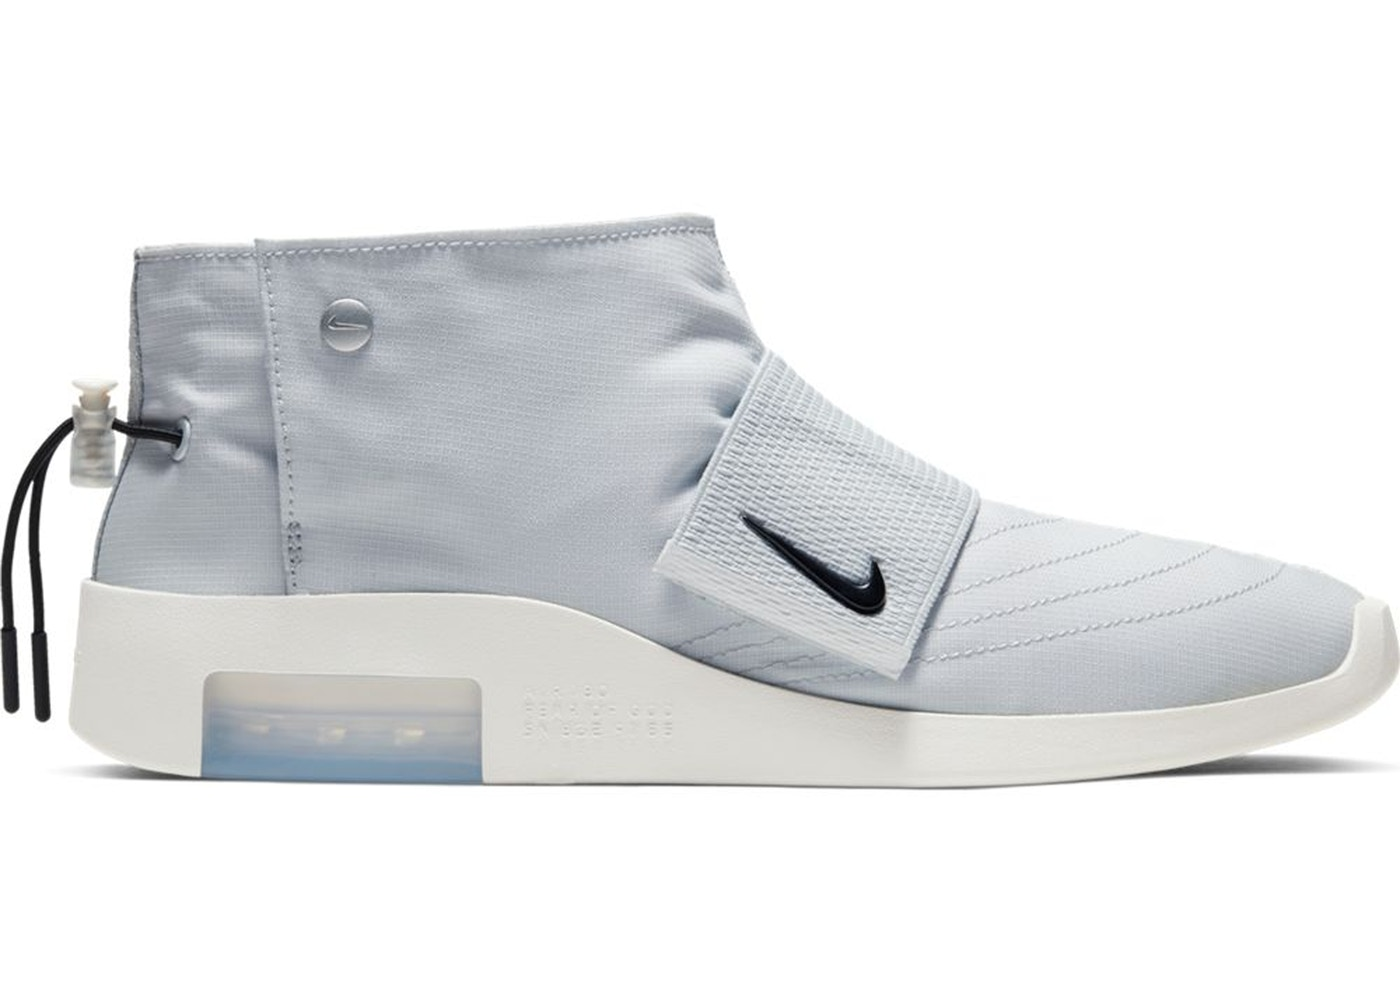 0679020f1d29 Air Fear Of God Moccasin Pure Platinum - AT8086-001